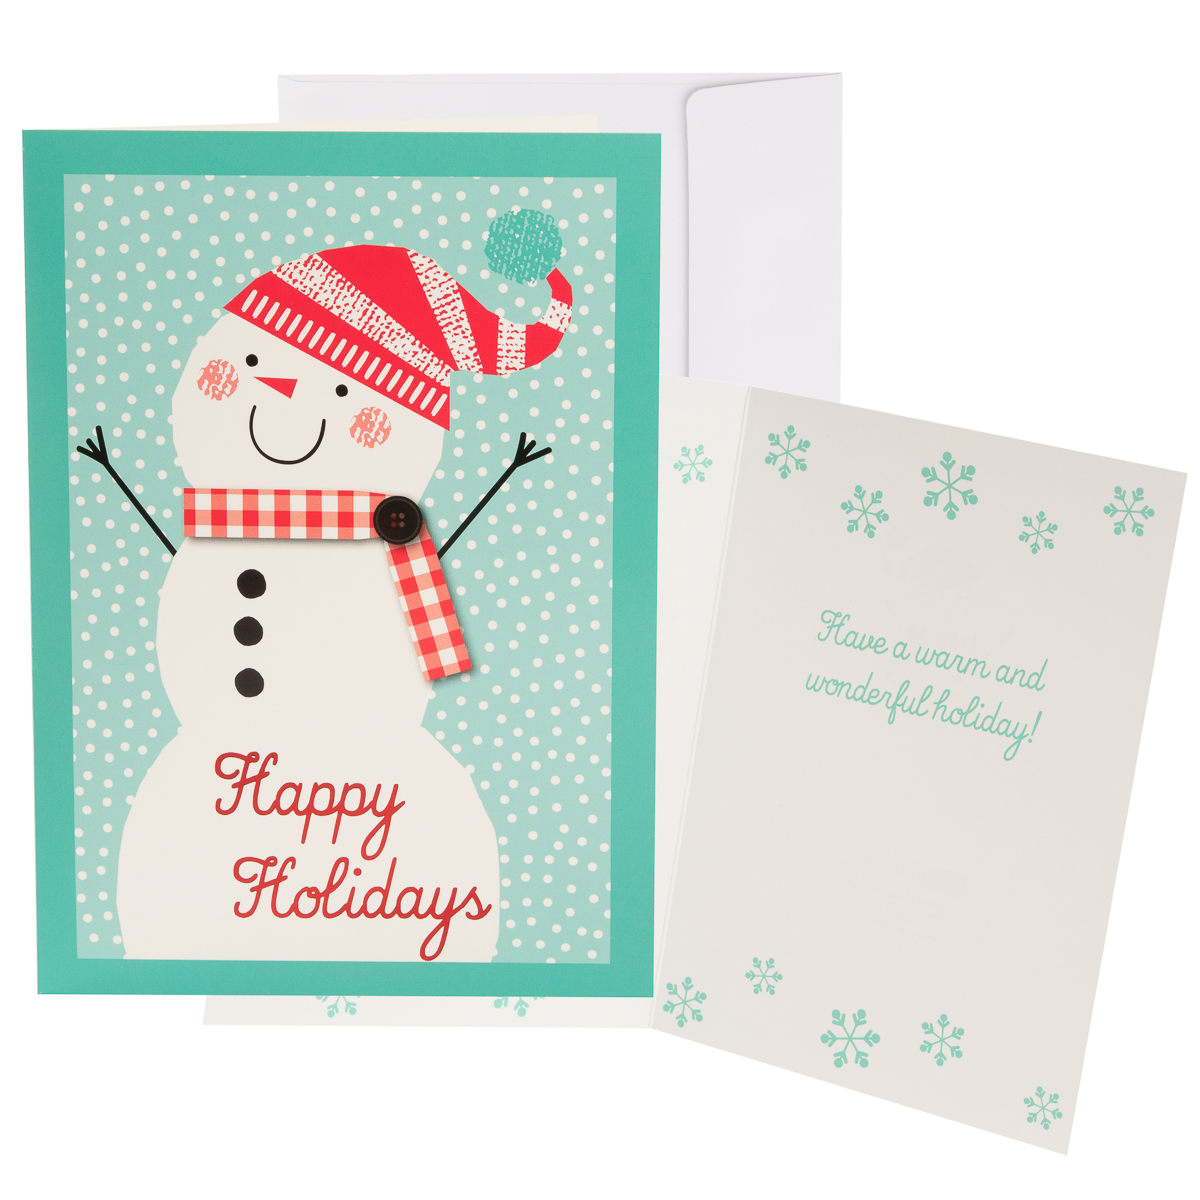 48pk-Merry-Christmas-Cards-Bulk-Assortment-Holiday-Card-Pack-with-Foil-amp-Glitter thumbnail 16